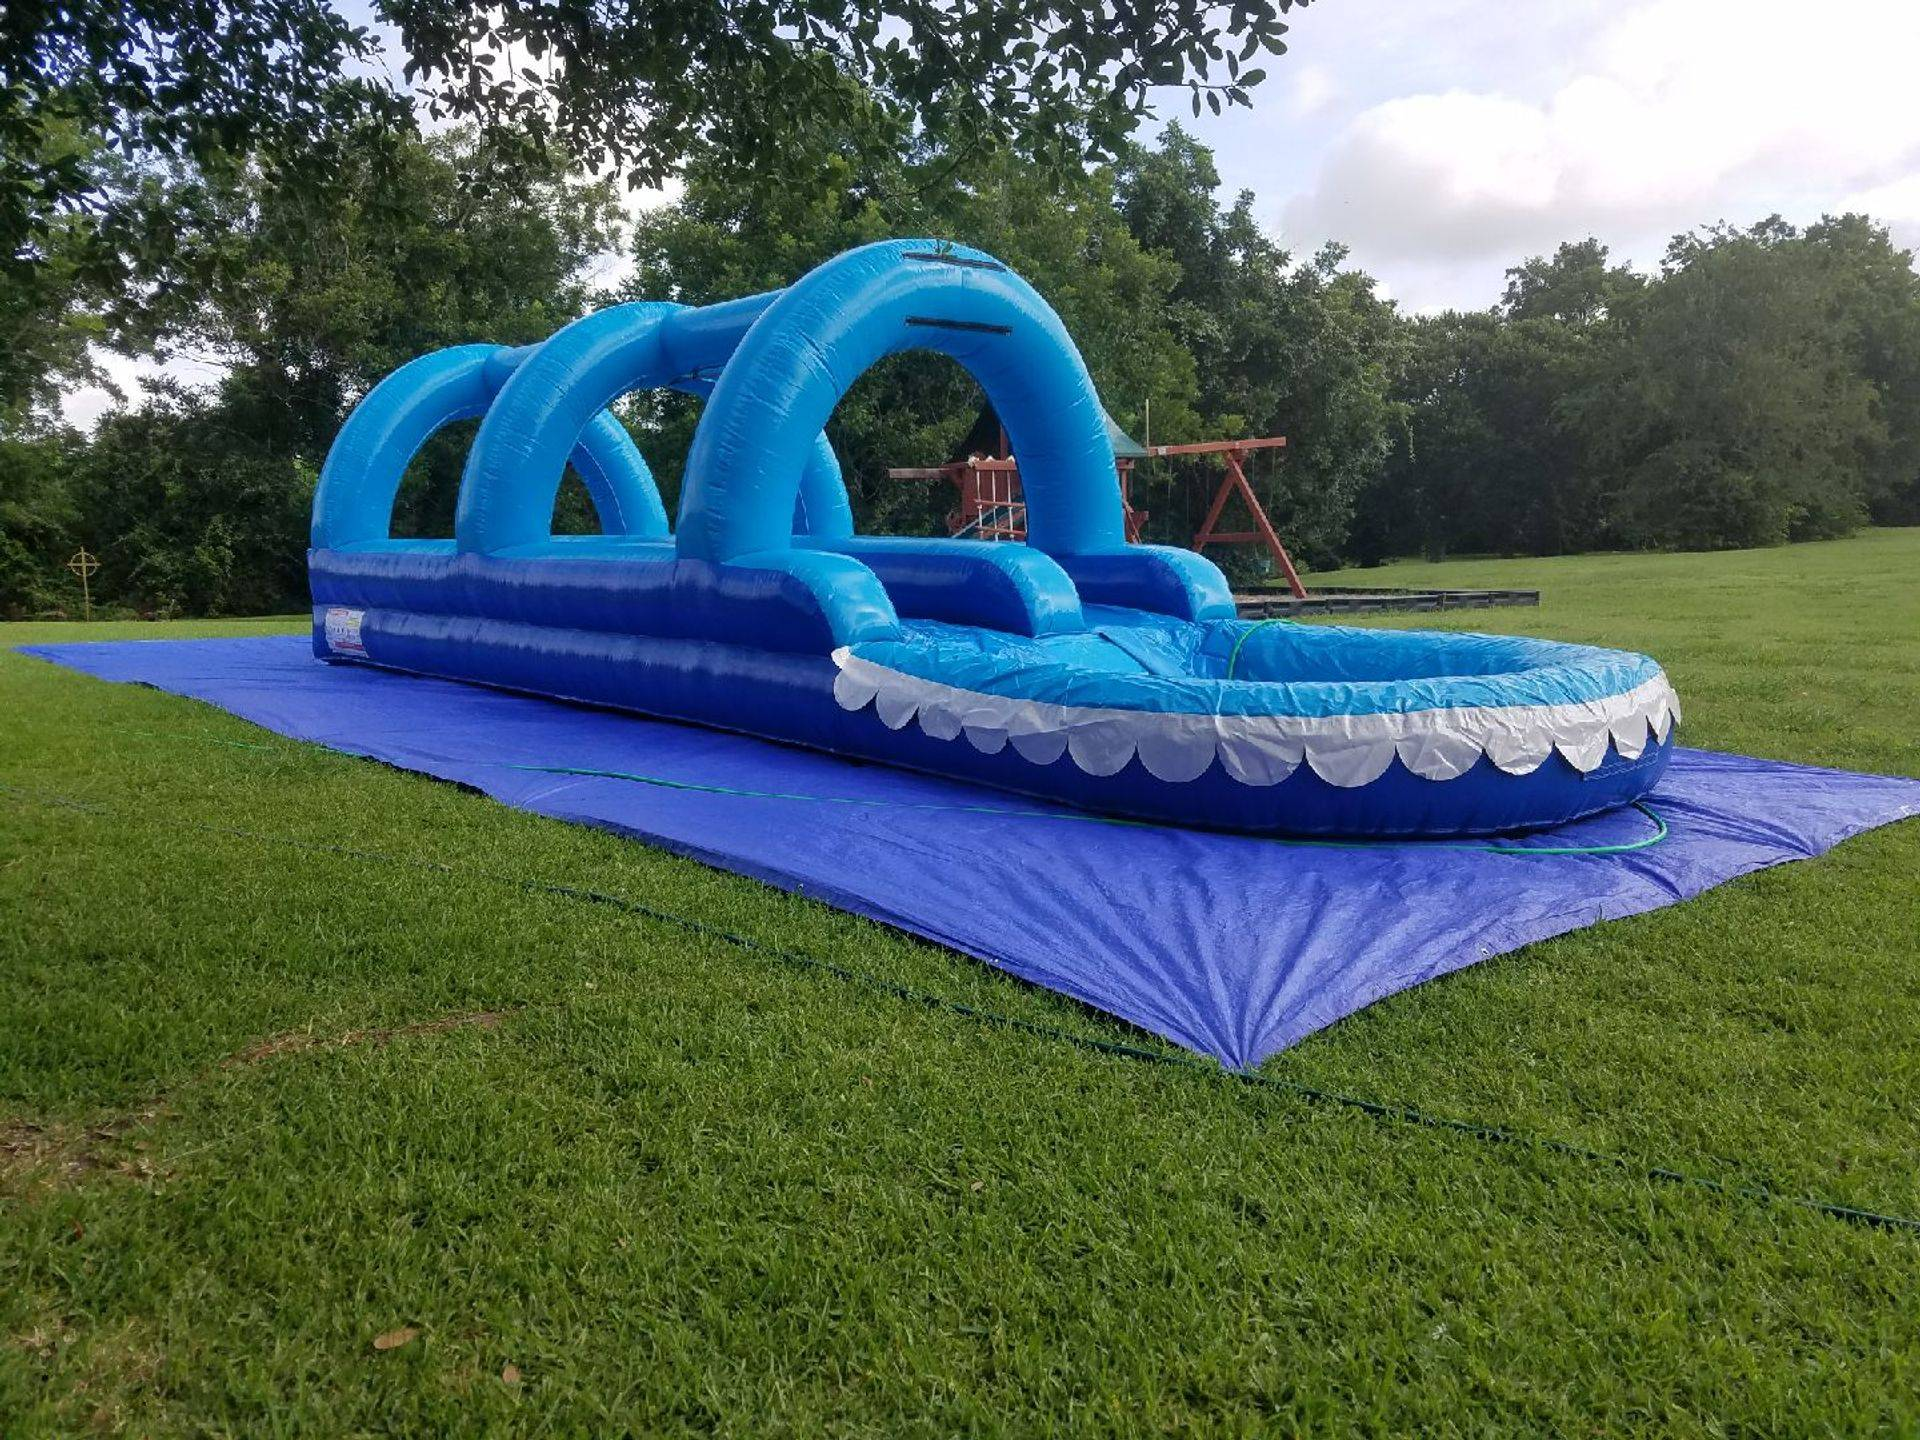 33' Long Double Lane Slip And Slide